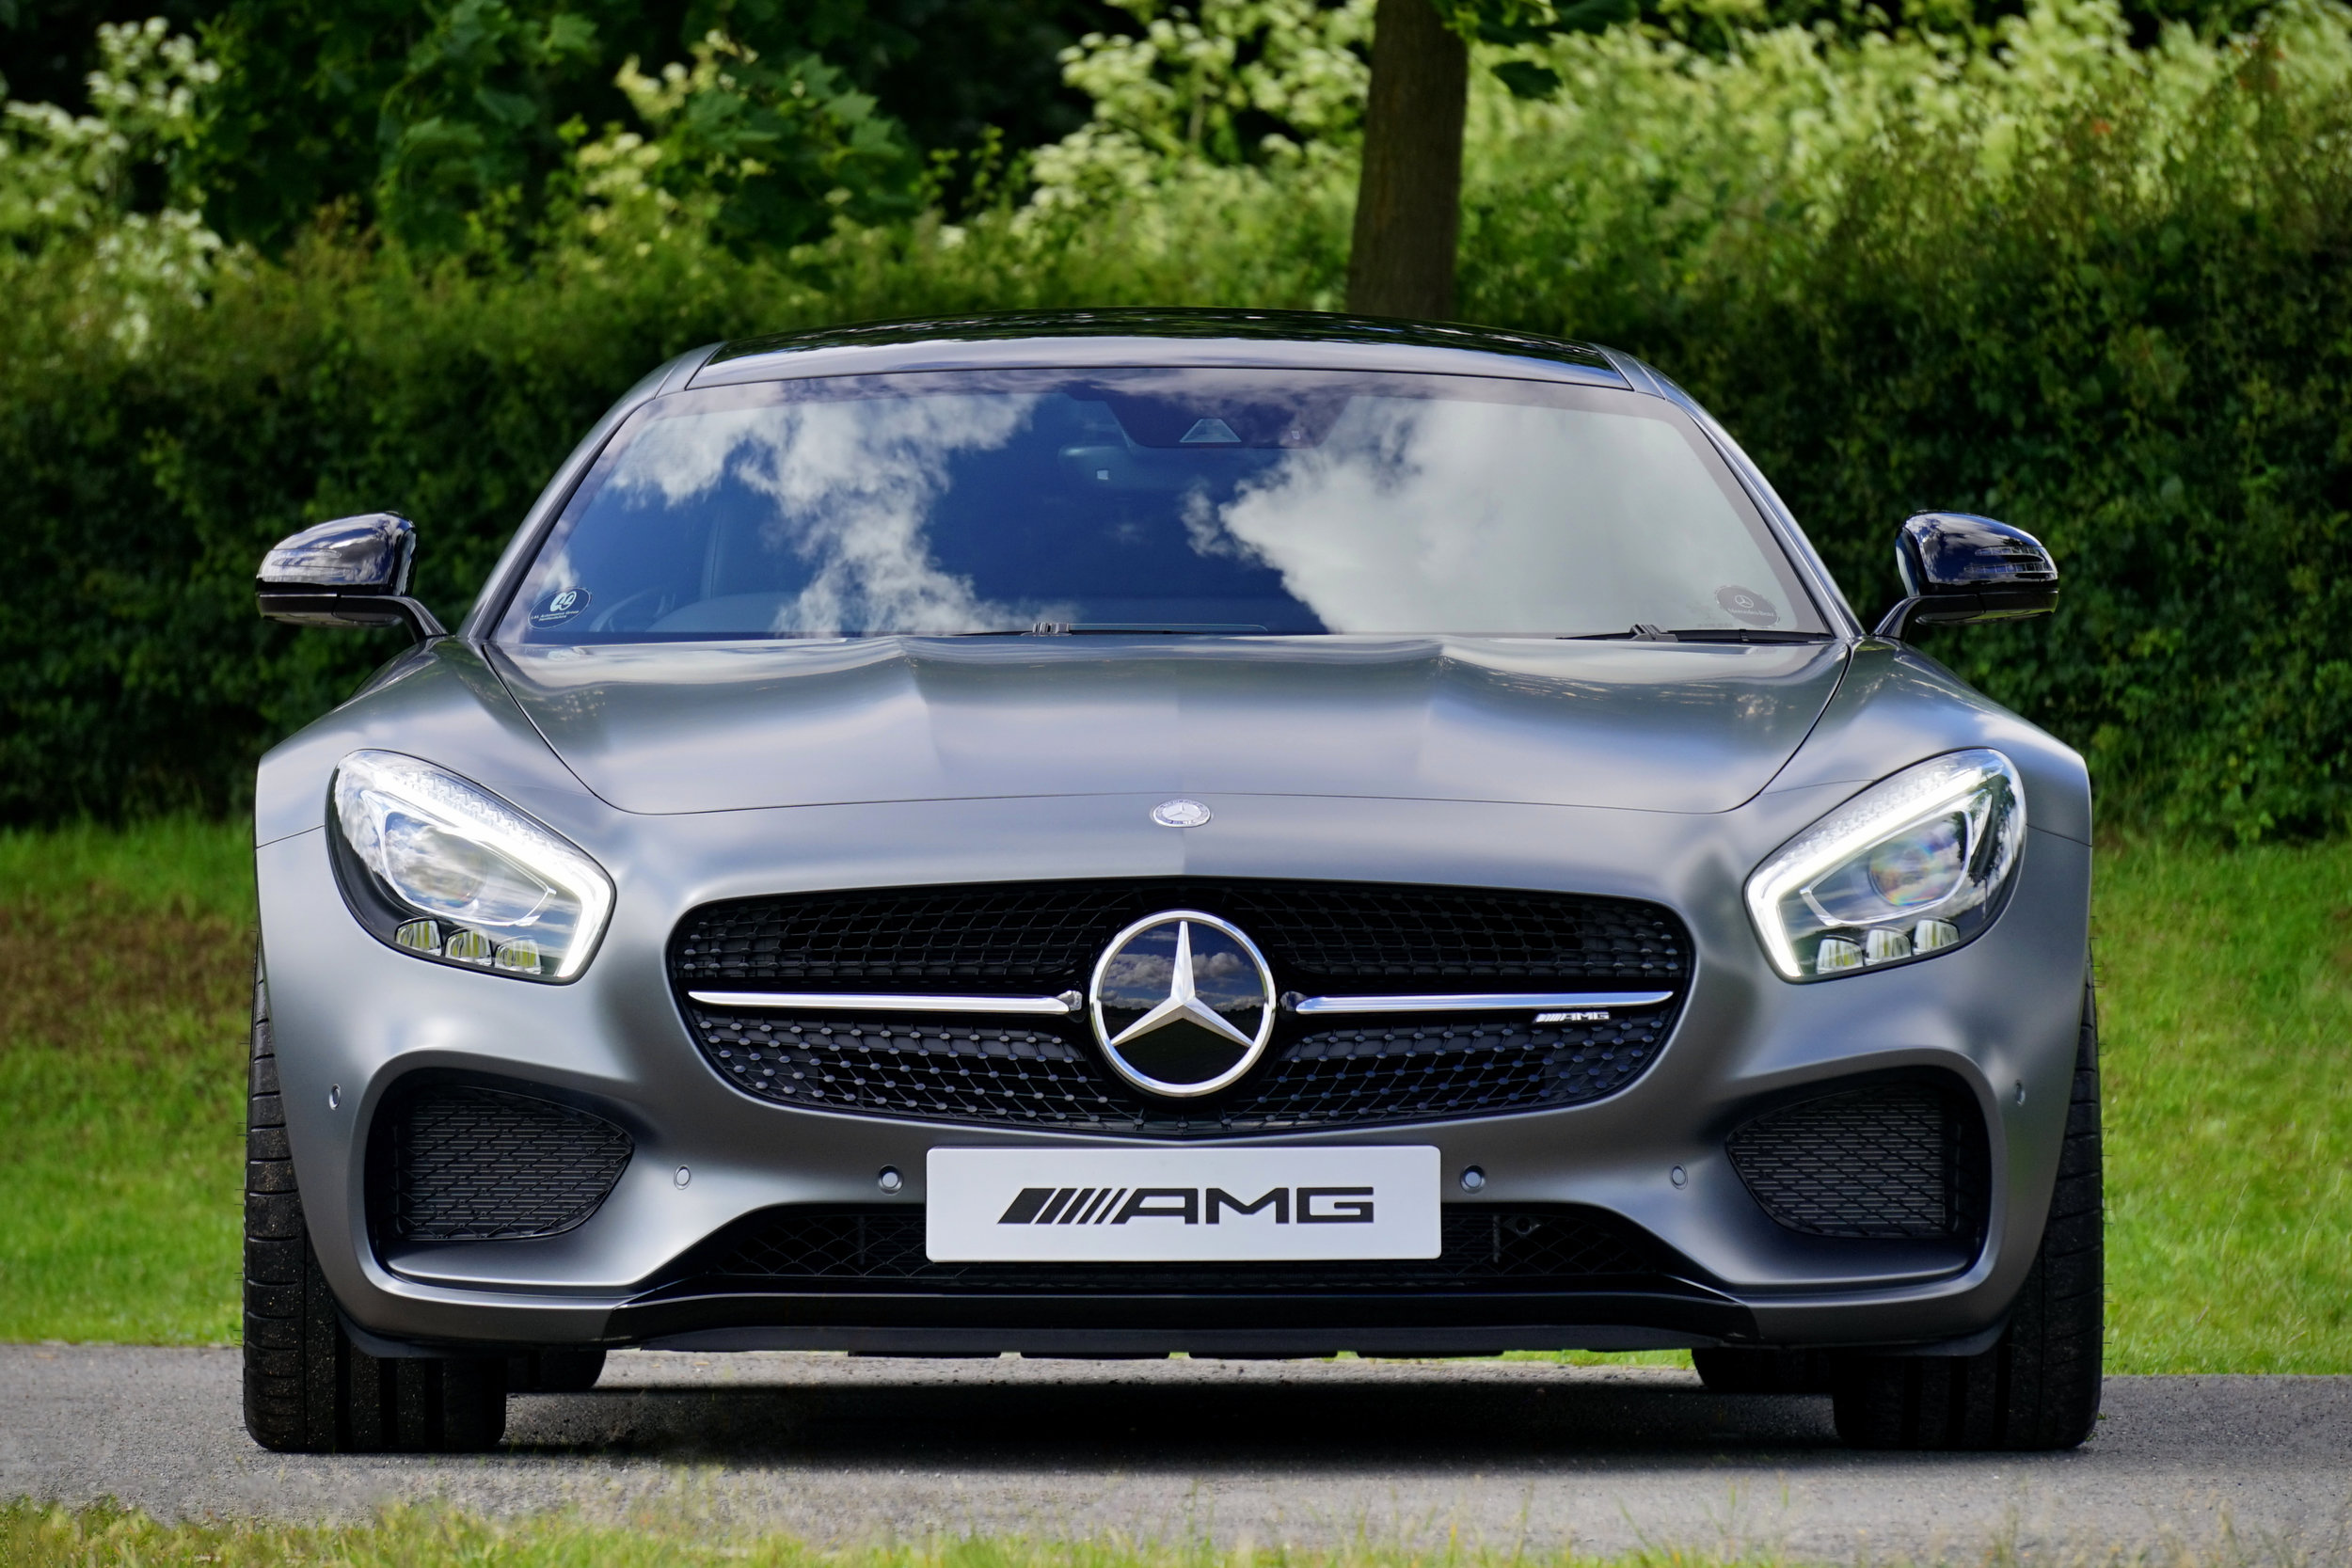 saint a rent amg en benz convertible rental mercedes car luxury tropez